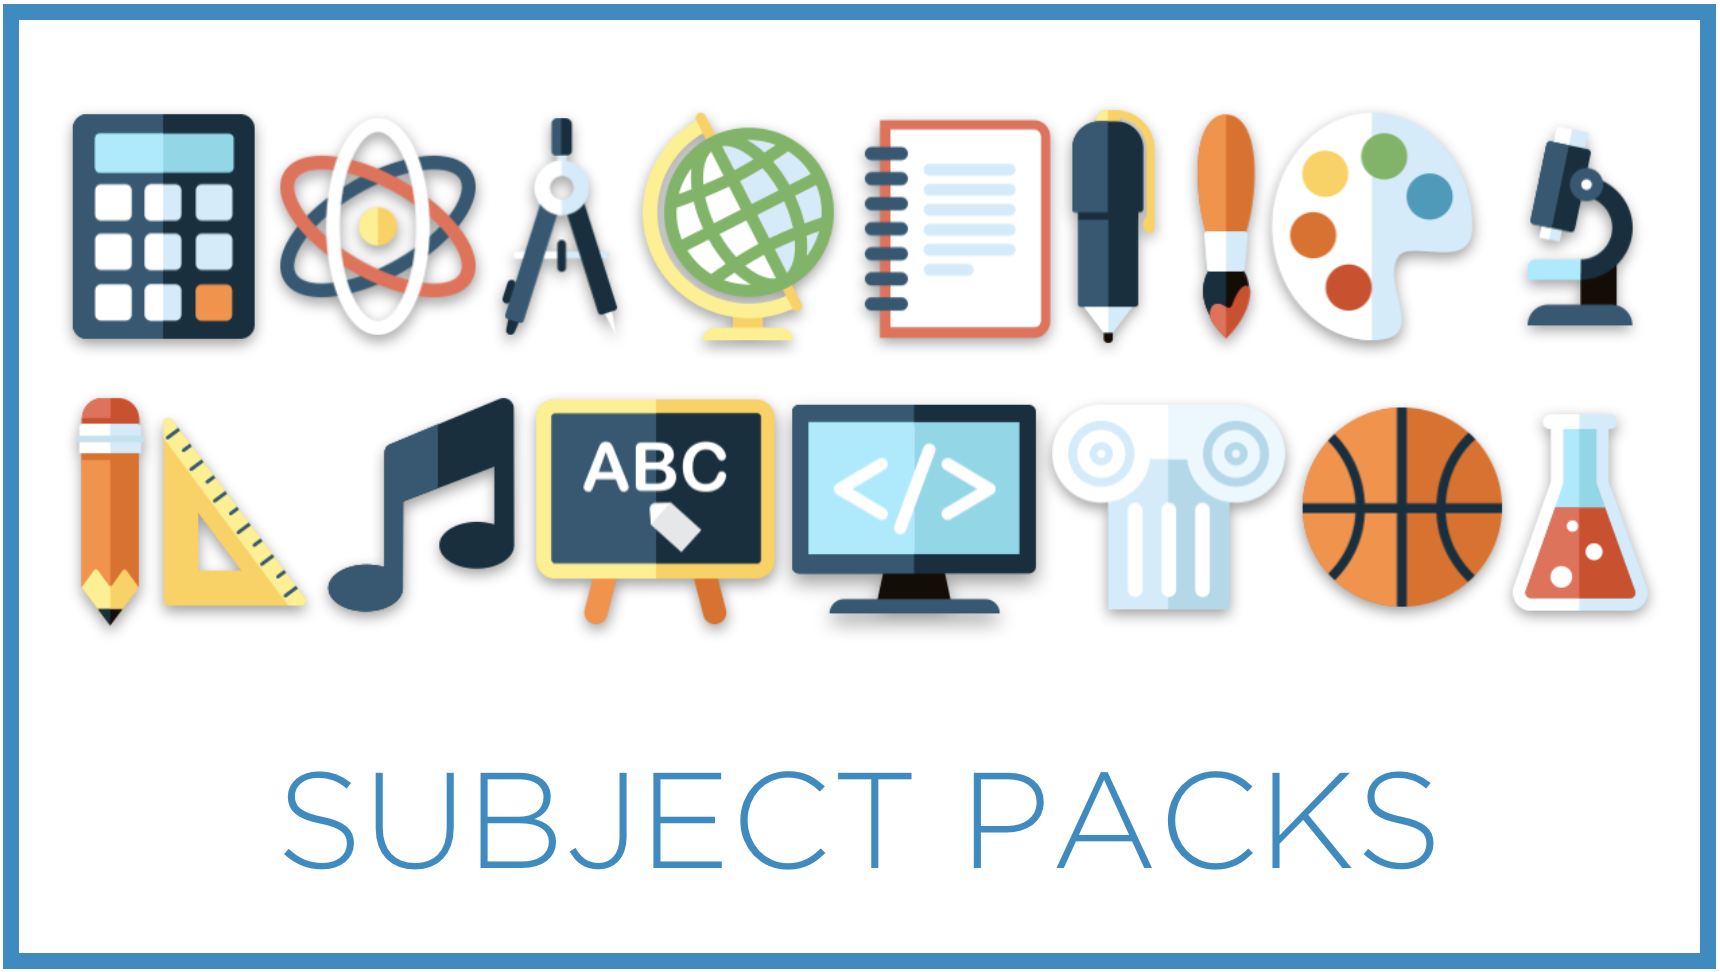 Check out the list of Subject Pack game topics and find one that will be great with your students!